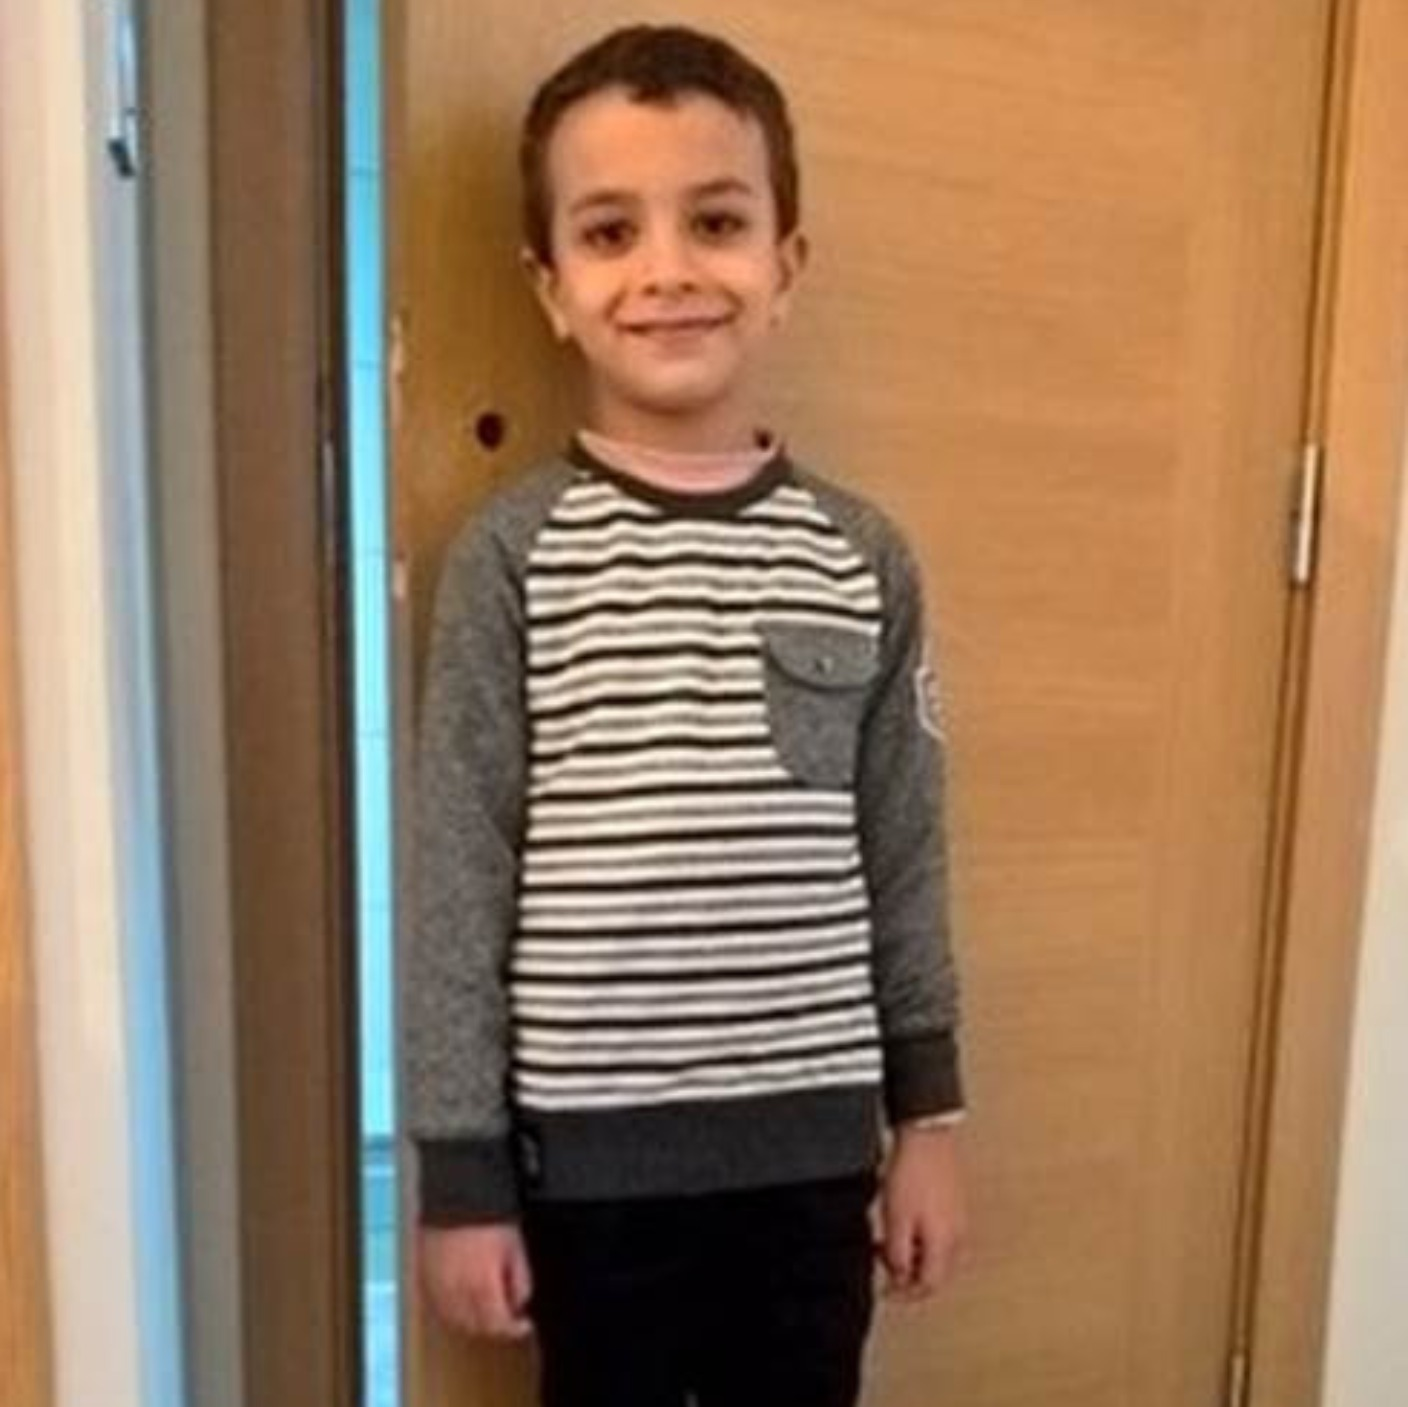 Five year old helps rescue Mum from locked bathroom | West ...